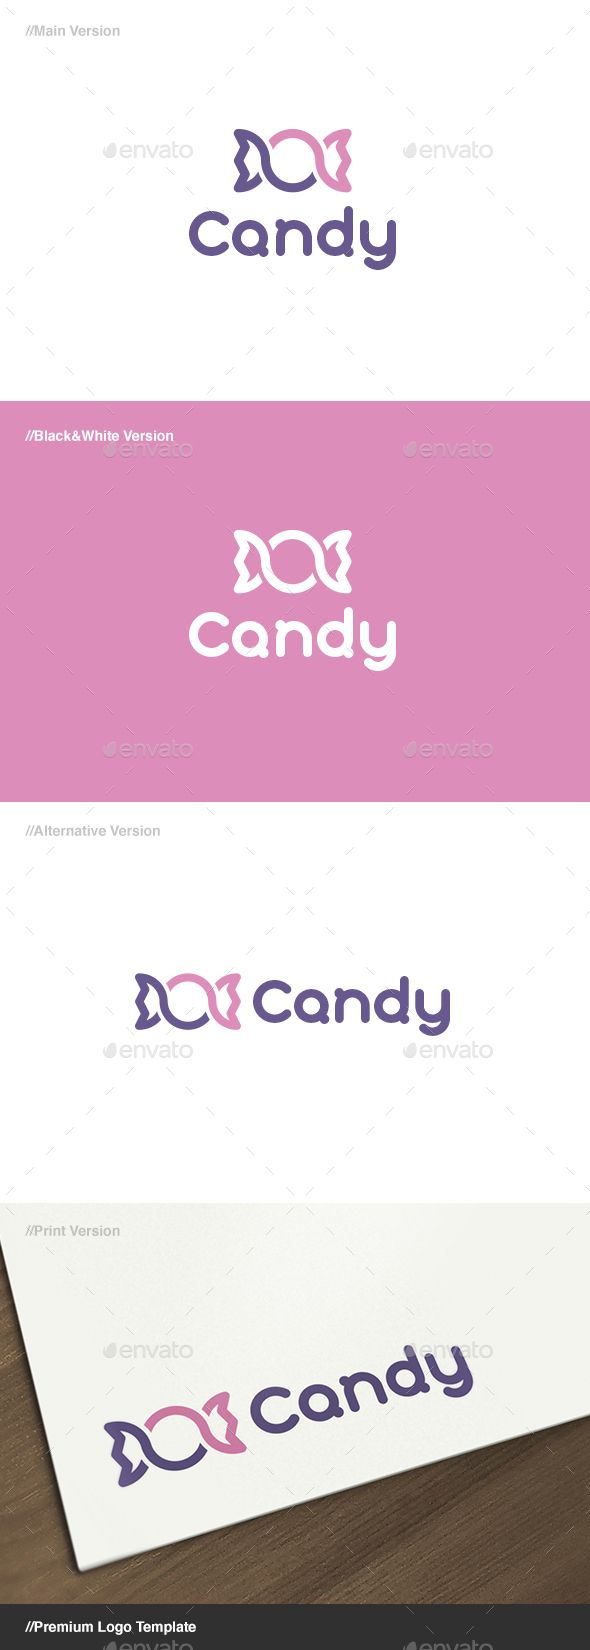 Candy Logo - EPS Template • Only available here ➝ http://graphicriver.net/item/candy-logo/13940072?ref=pxcr